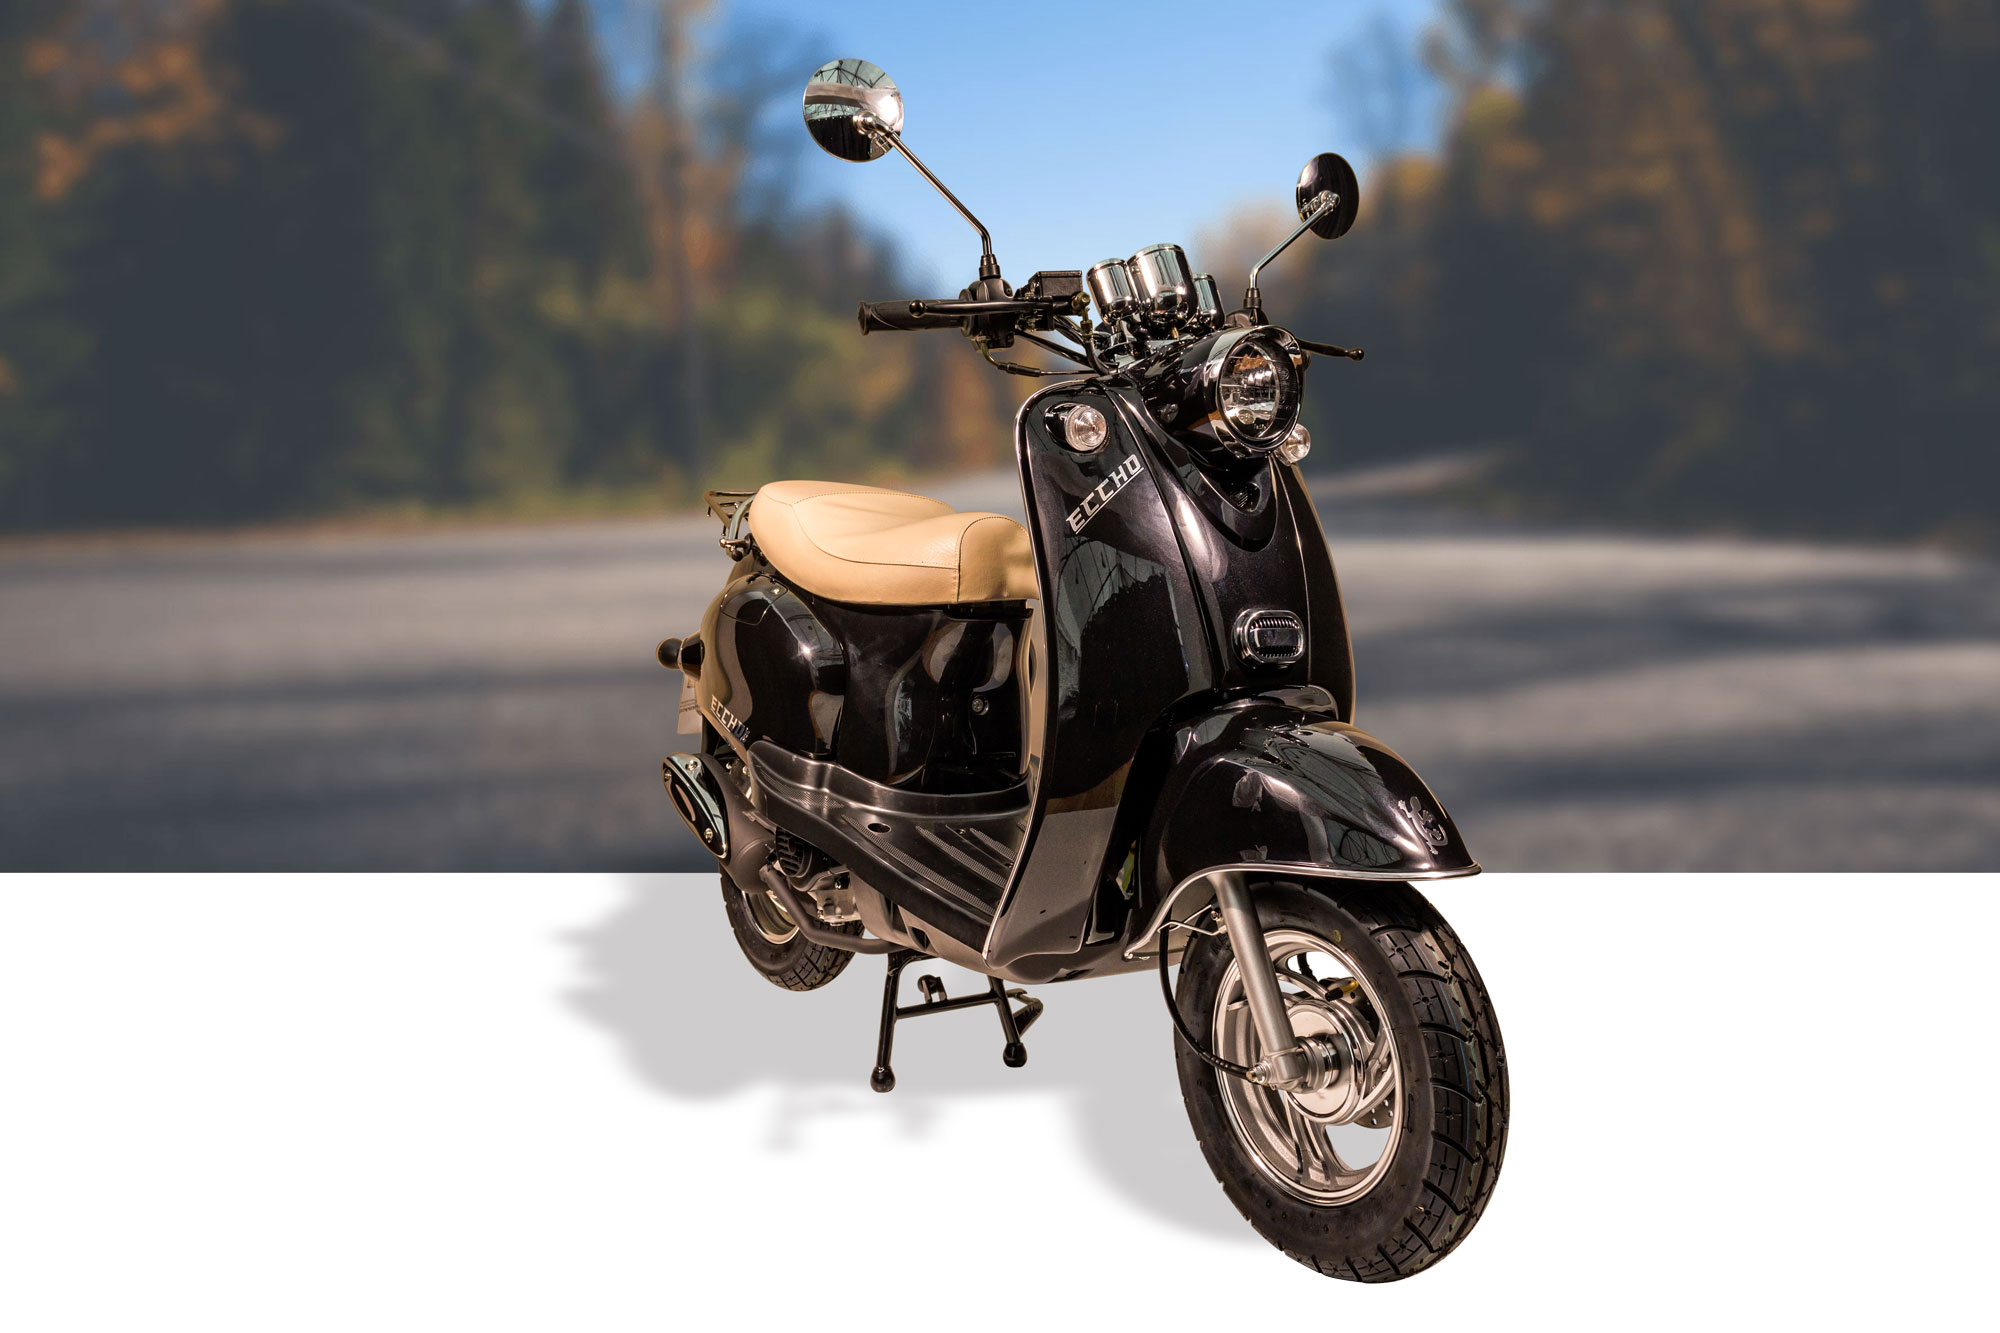 SCOOTER-50-ECCHO-RETRO-II-EFI-03